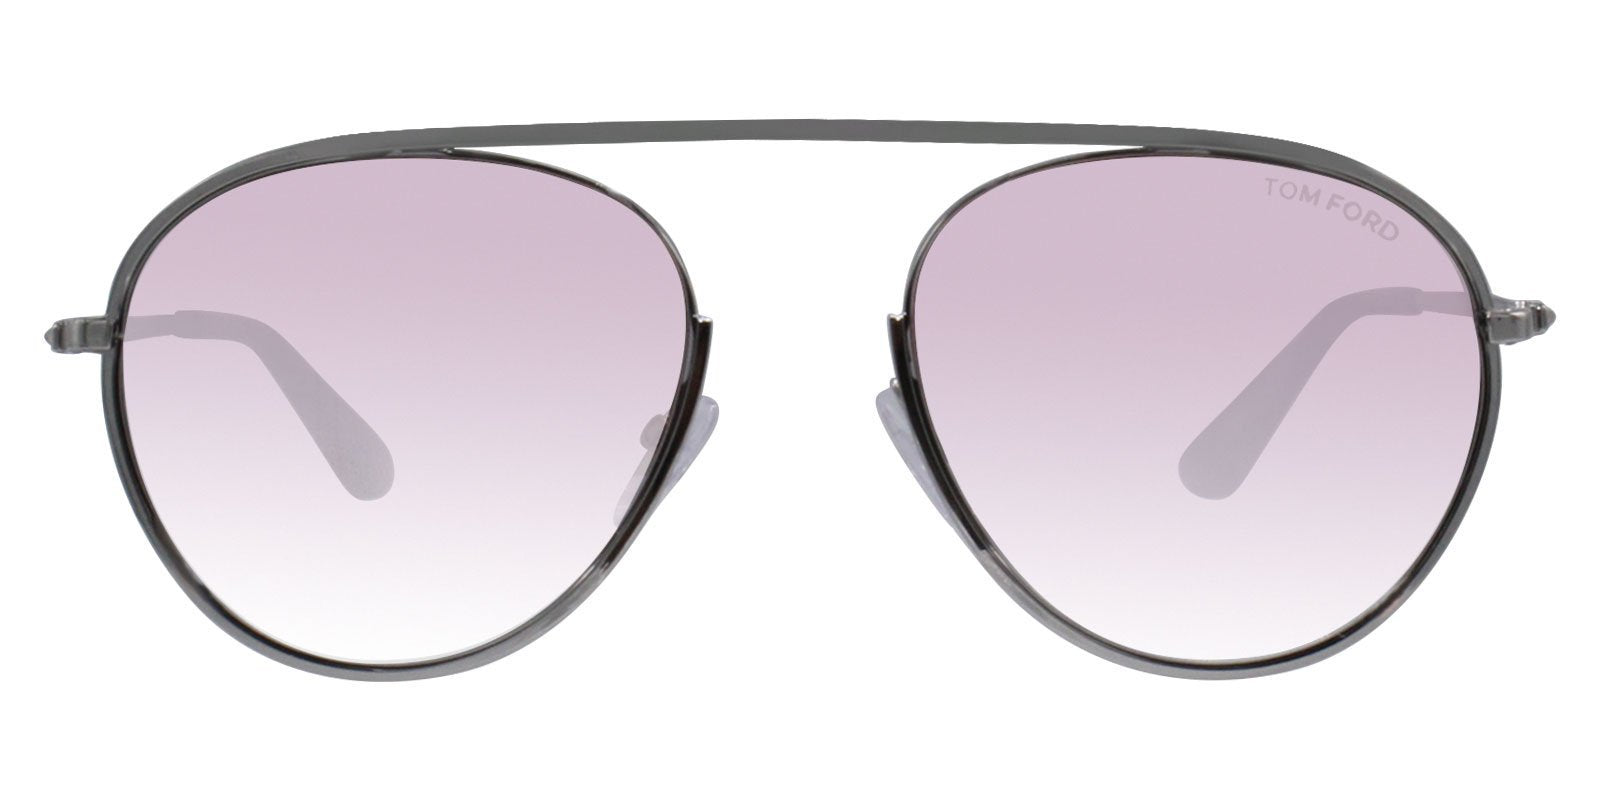 088623dd88 Tom Ford - Keith-02 Silver - Pink sunglasses– Designer Eyes